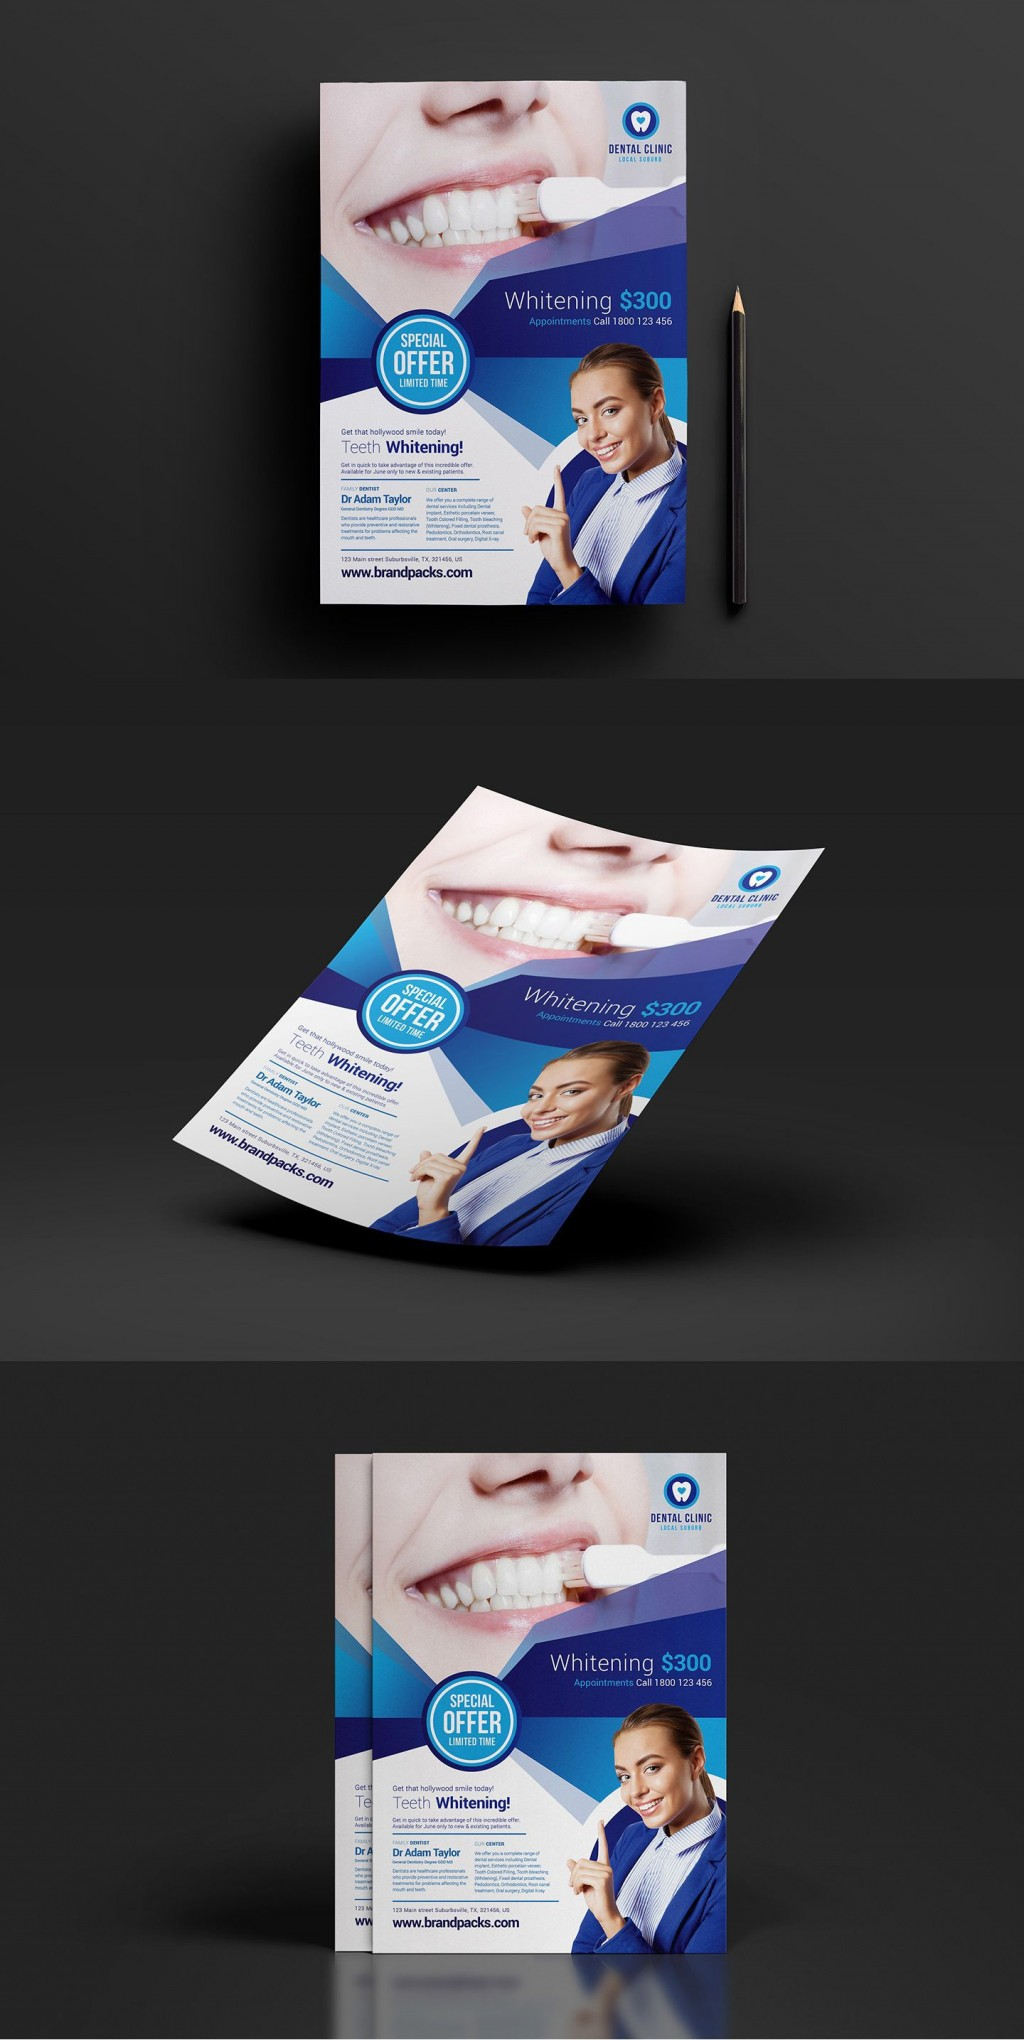 006 Unbelievable Free Print Ad Template Highest Quality  Templates Real Estate For WordLarge